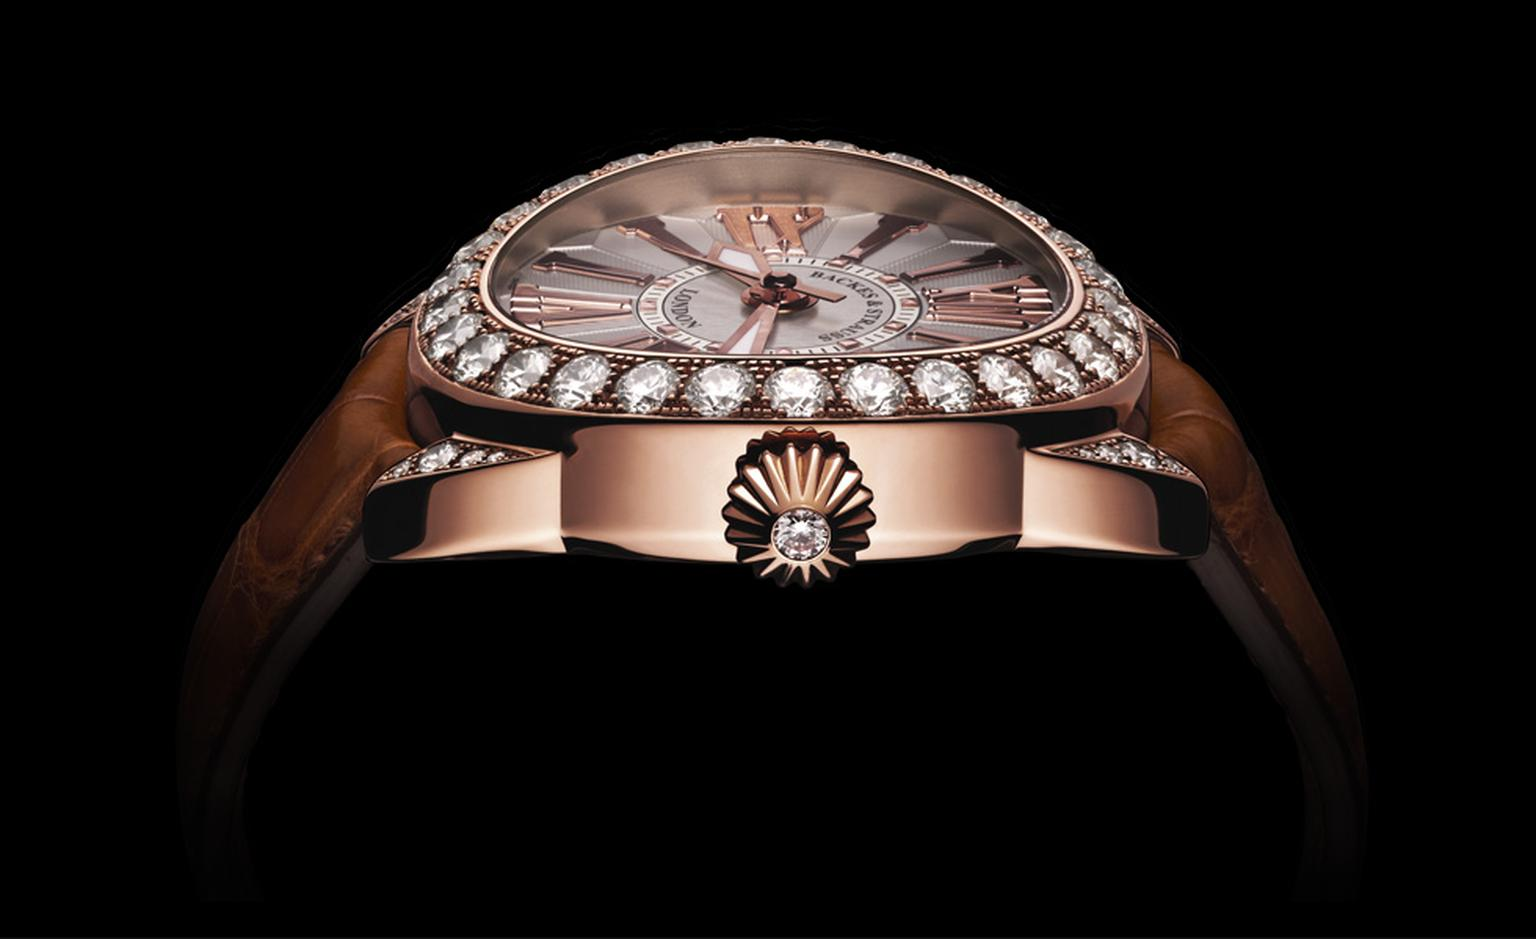 Backes & Strauss. The Piccadilly 40. Rose gold and diamonds. Tan alligator skin strap. Price from £64,290.00